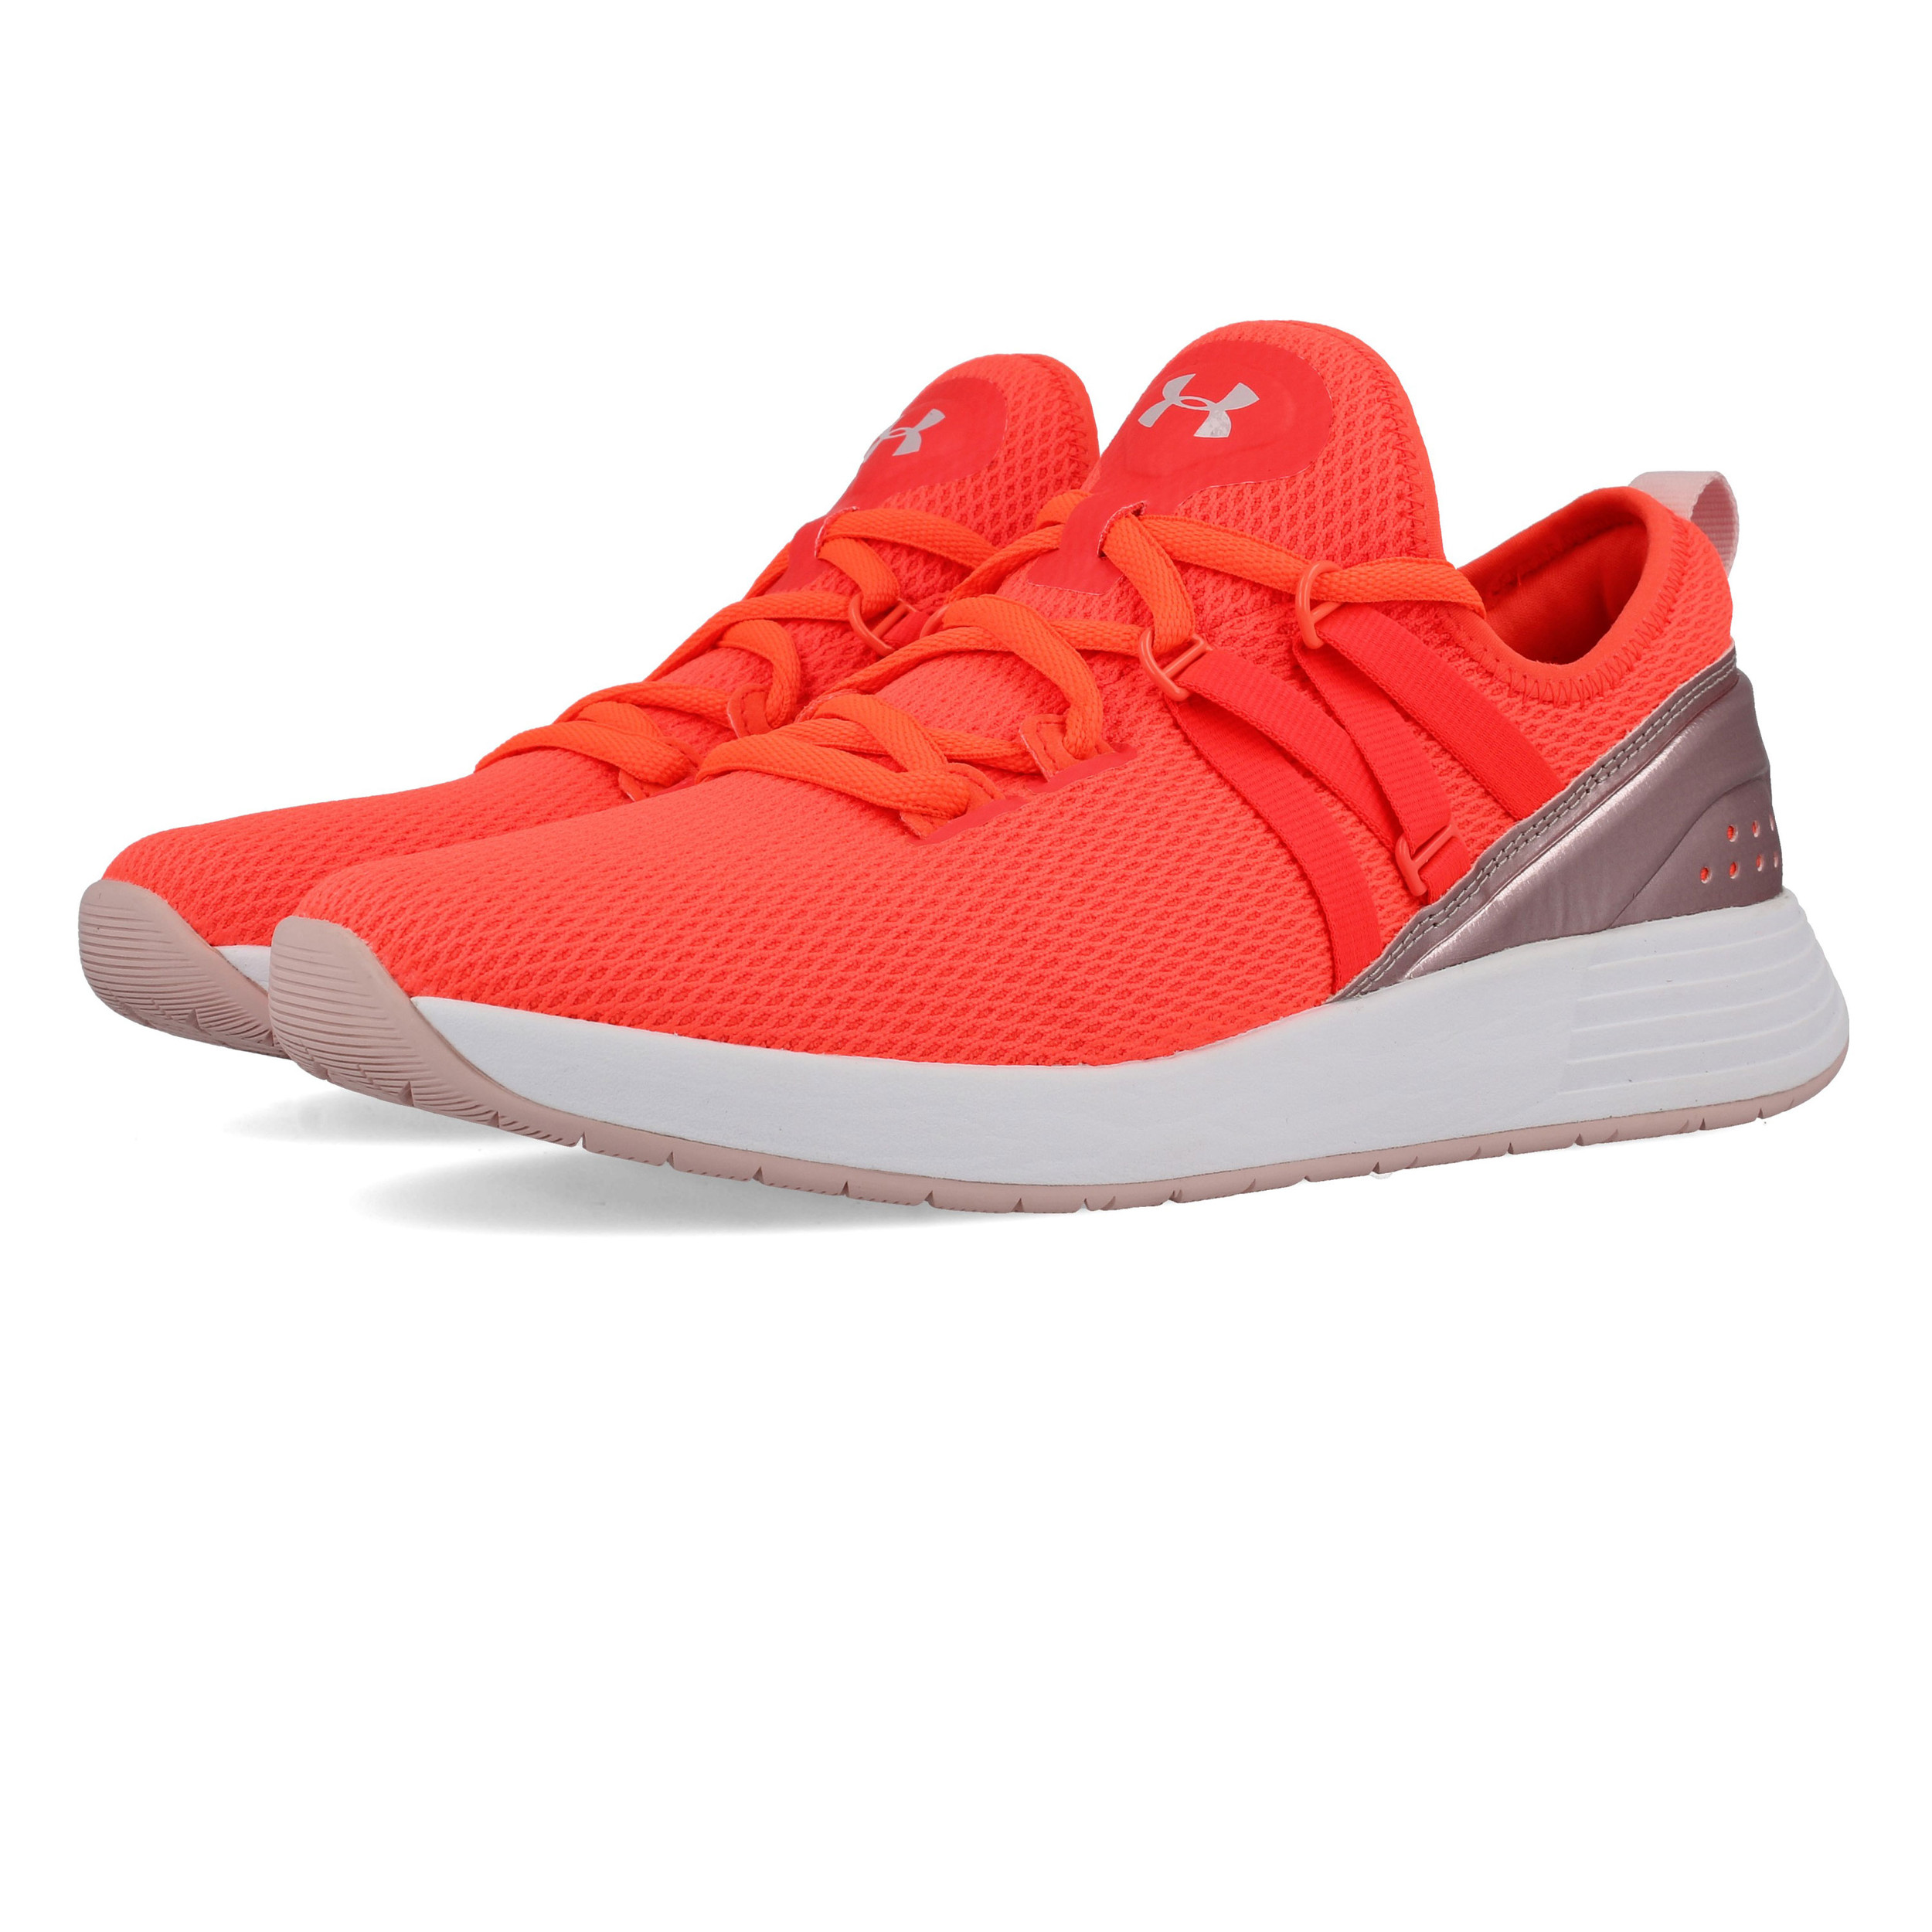 17afaffa09 Details about Under Armour Womens Breathe Training Gym Shoes Orange  Breathable Trainers